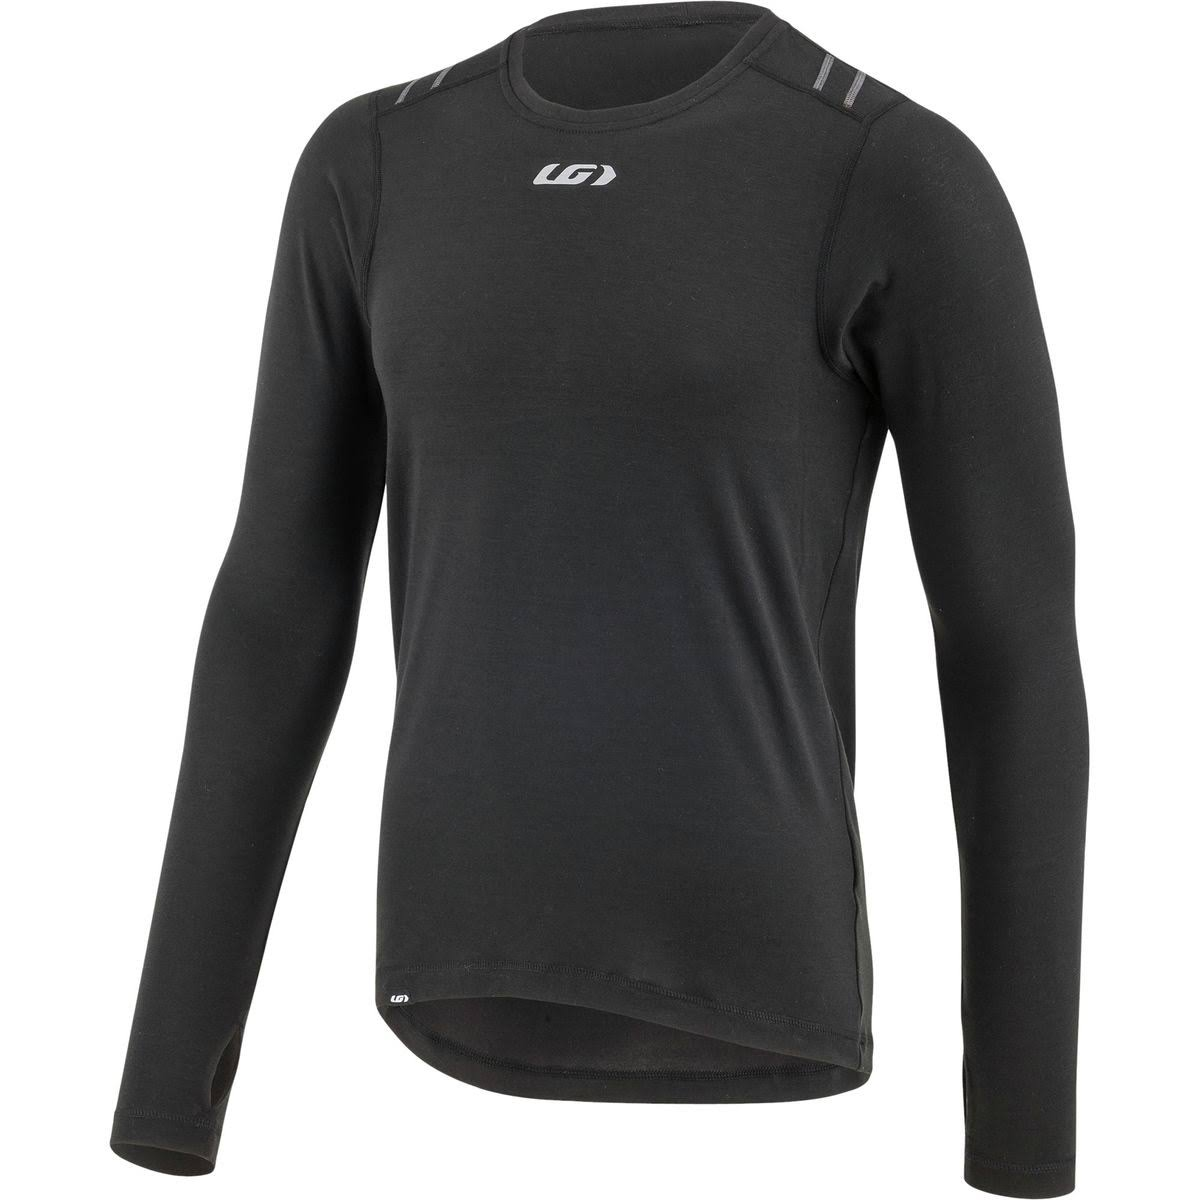 Louis Garneau 2004 LS Men's Base Layer Top: Black - MD